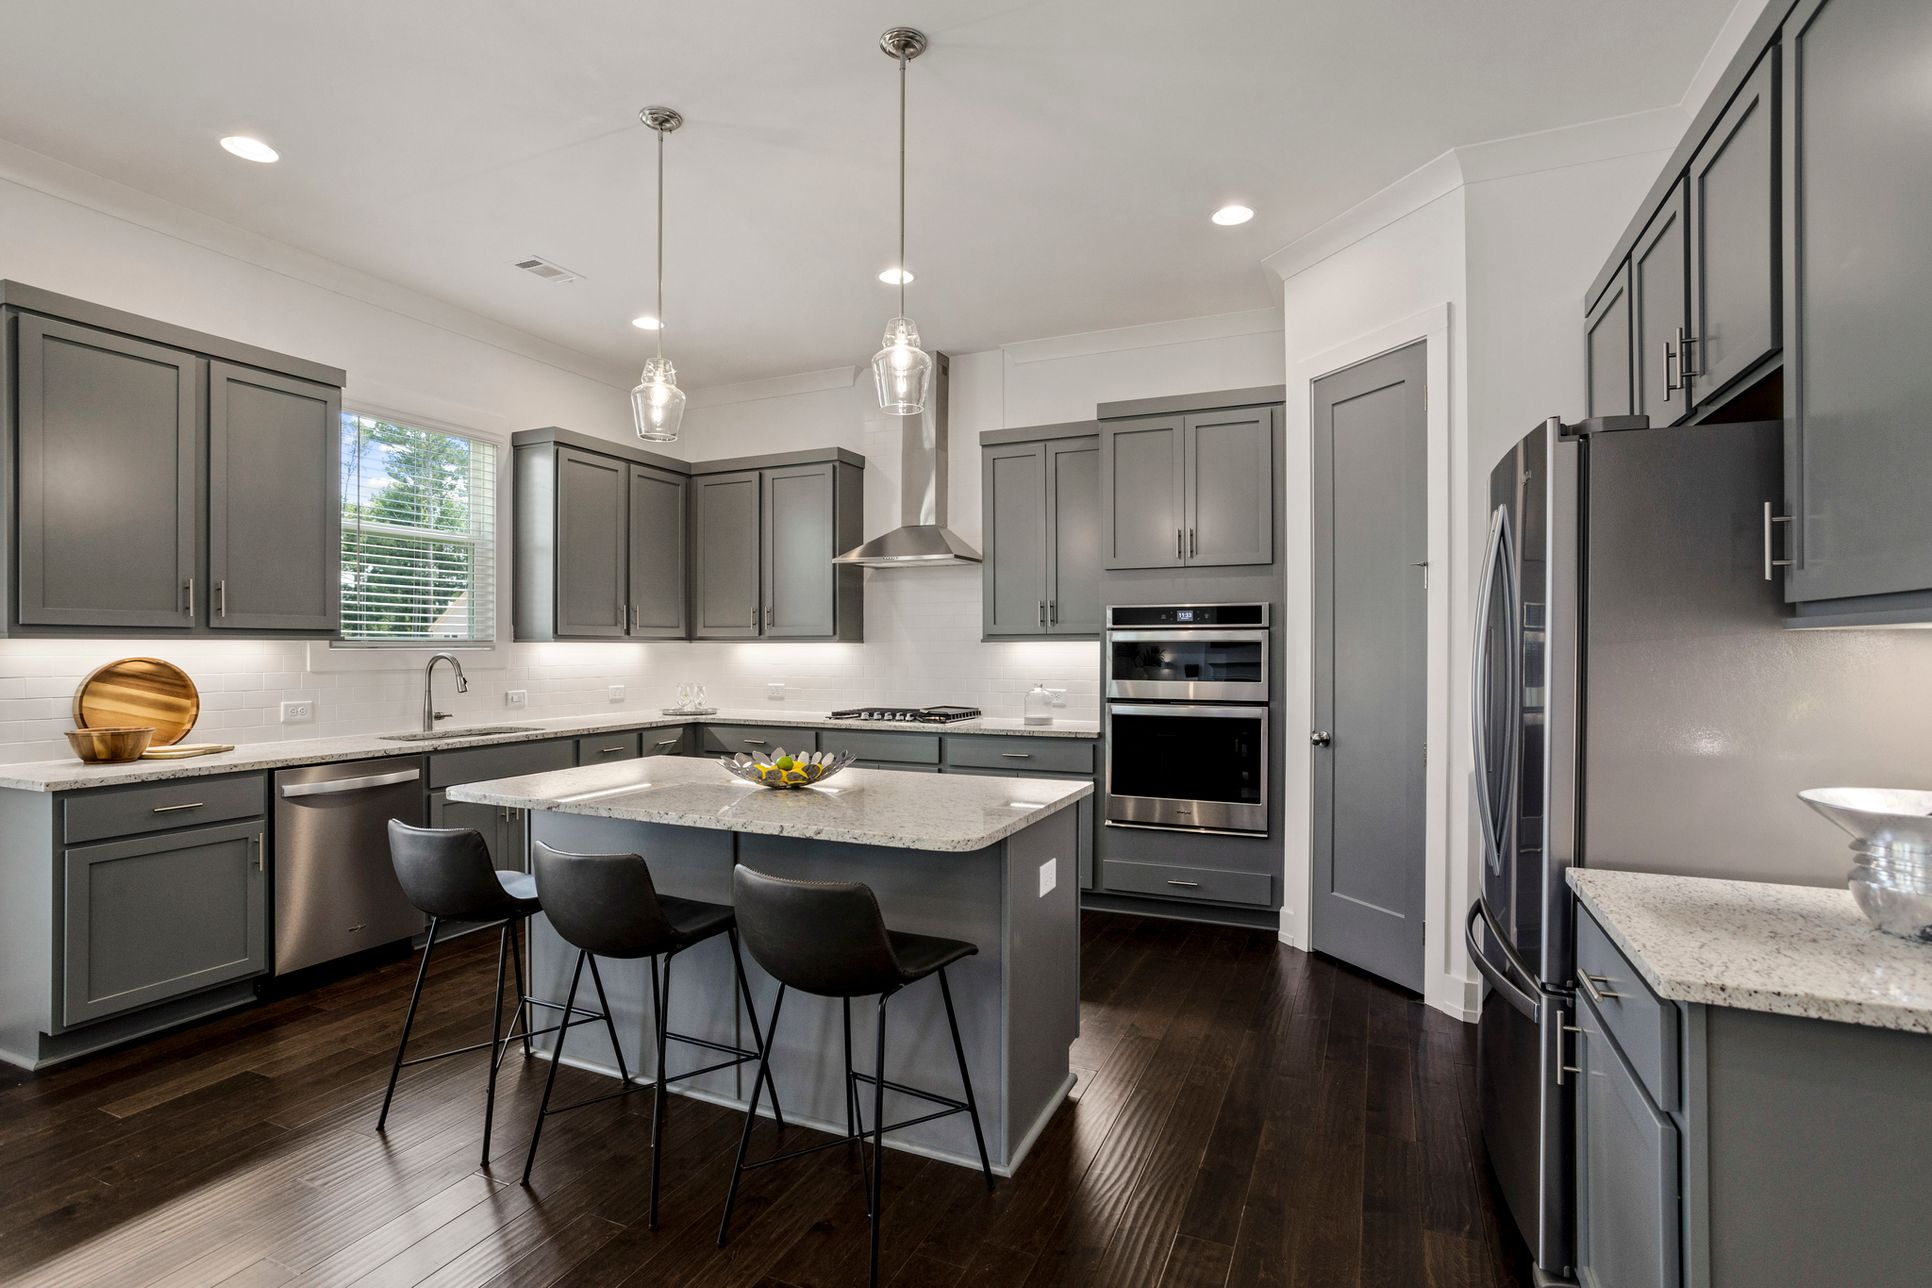 The Abbott:Spacious New Floor Plans with Luxury Details Inside and Out